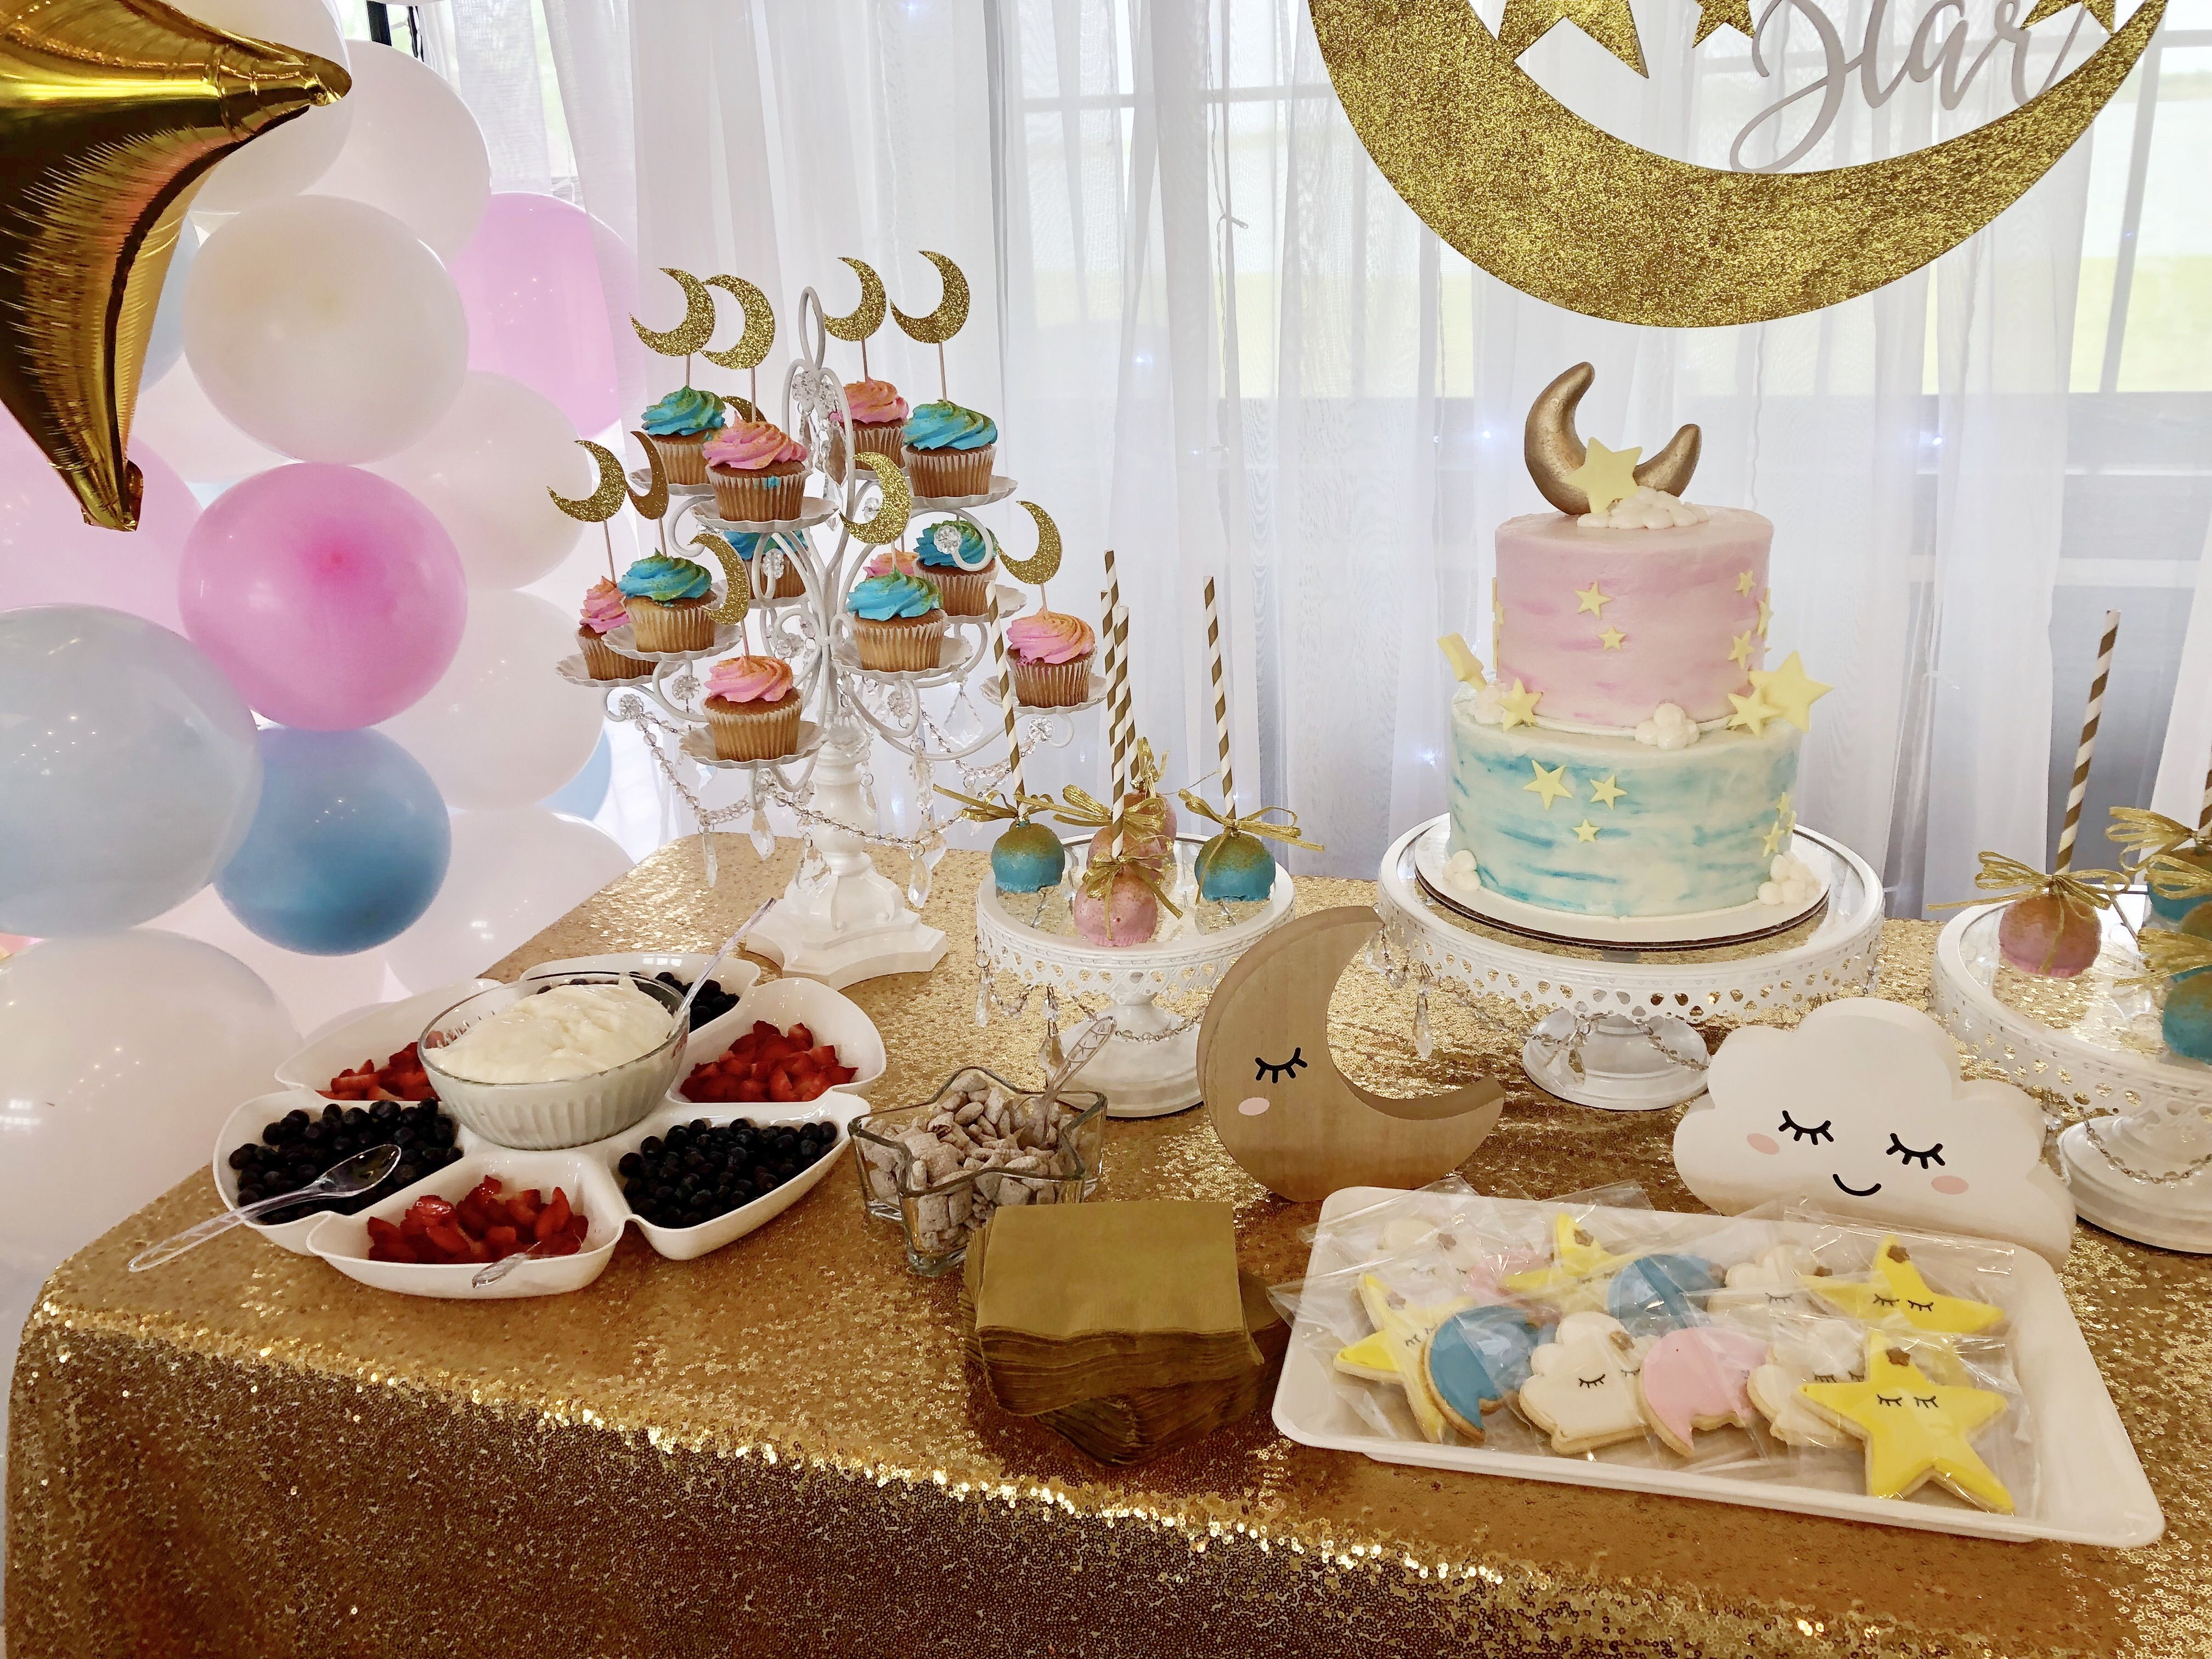 Twinkle Little Star Gender Reveal Theme And Ideas For Desserts And Sweet Treats Gender Reveal Themes Baby Shower Gender Reveal Baby Shower